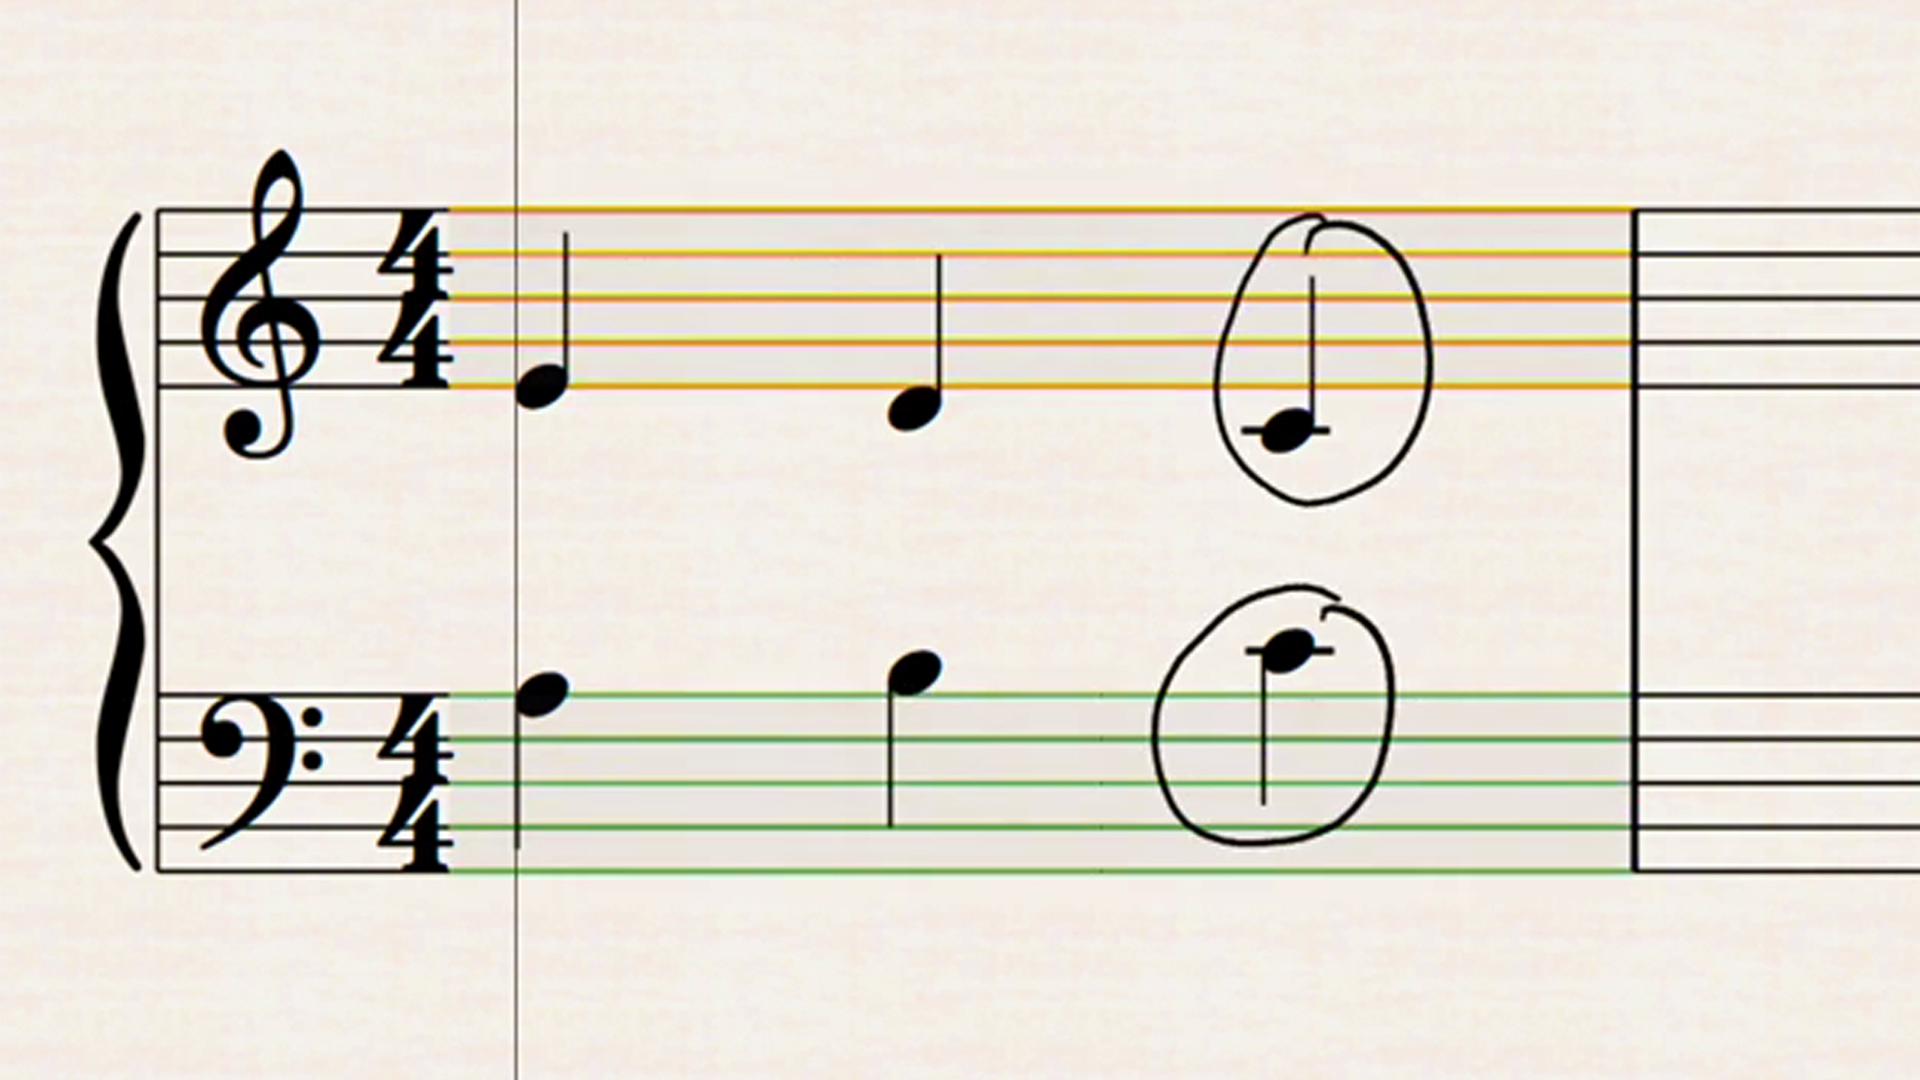 music notation online courses classes training tutorials on lynda